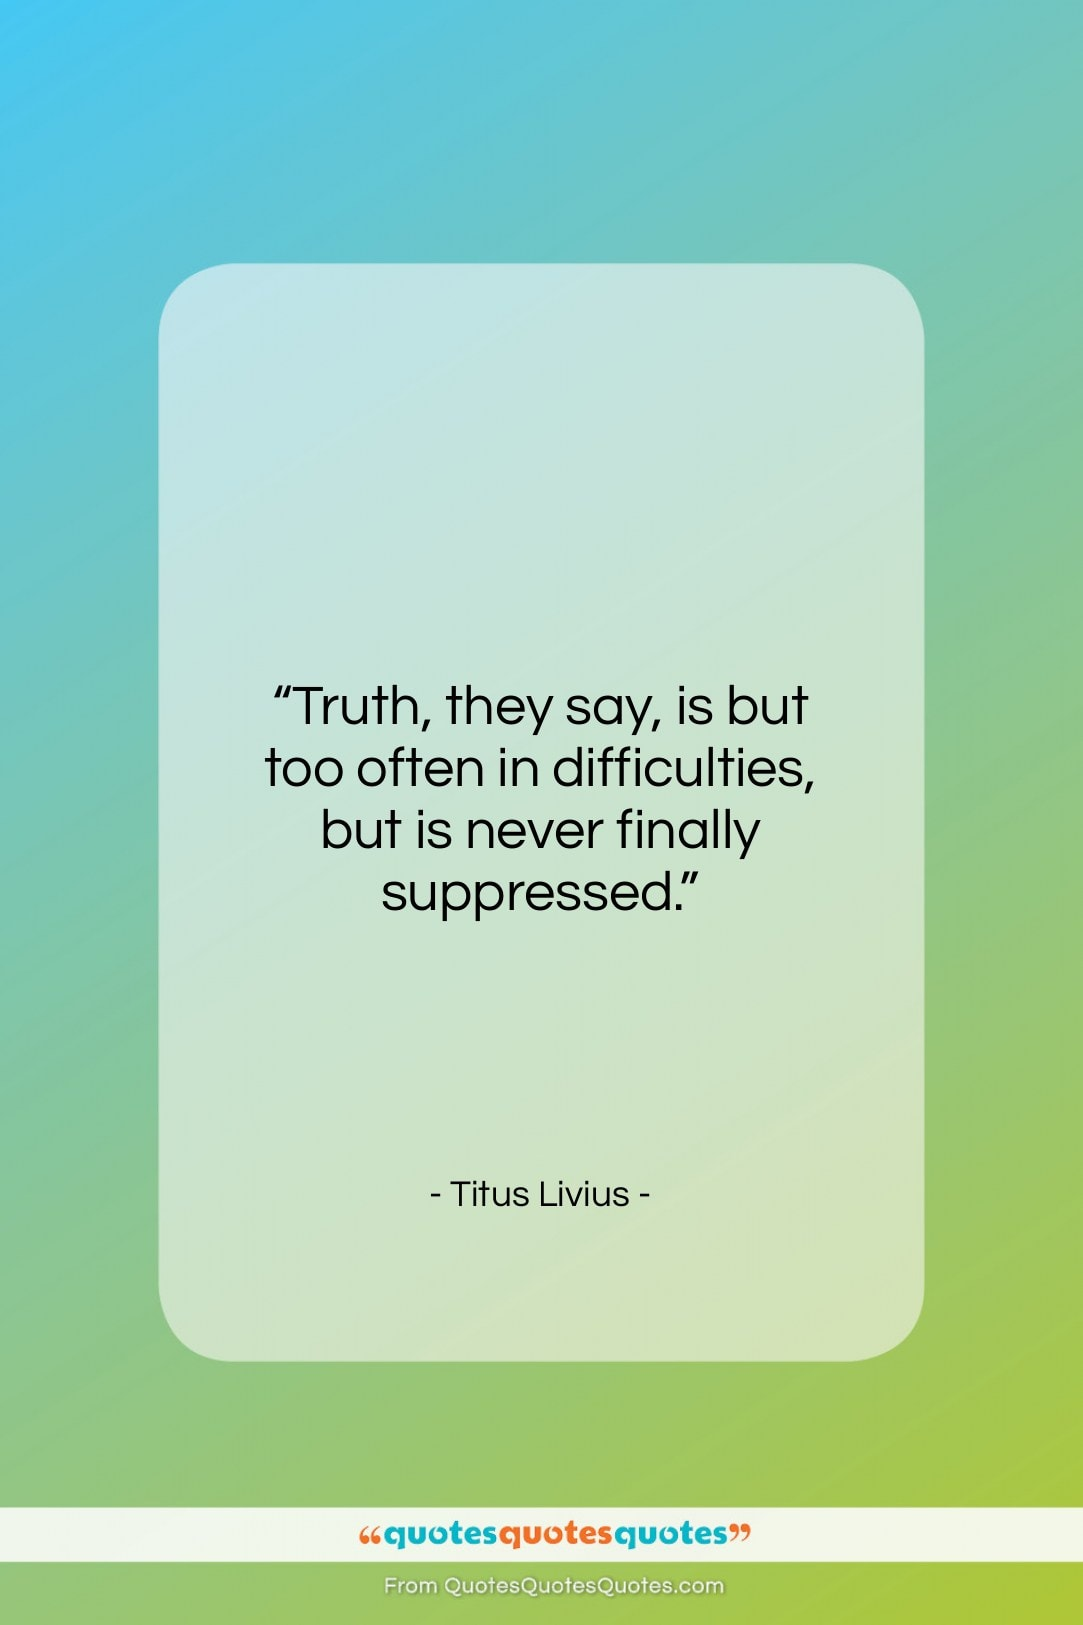 """Titus Livius quote: """"Truth, they say, is but too often…""""- at QuotesQuotesQuotes.com"""